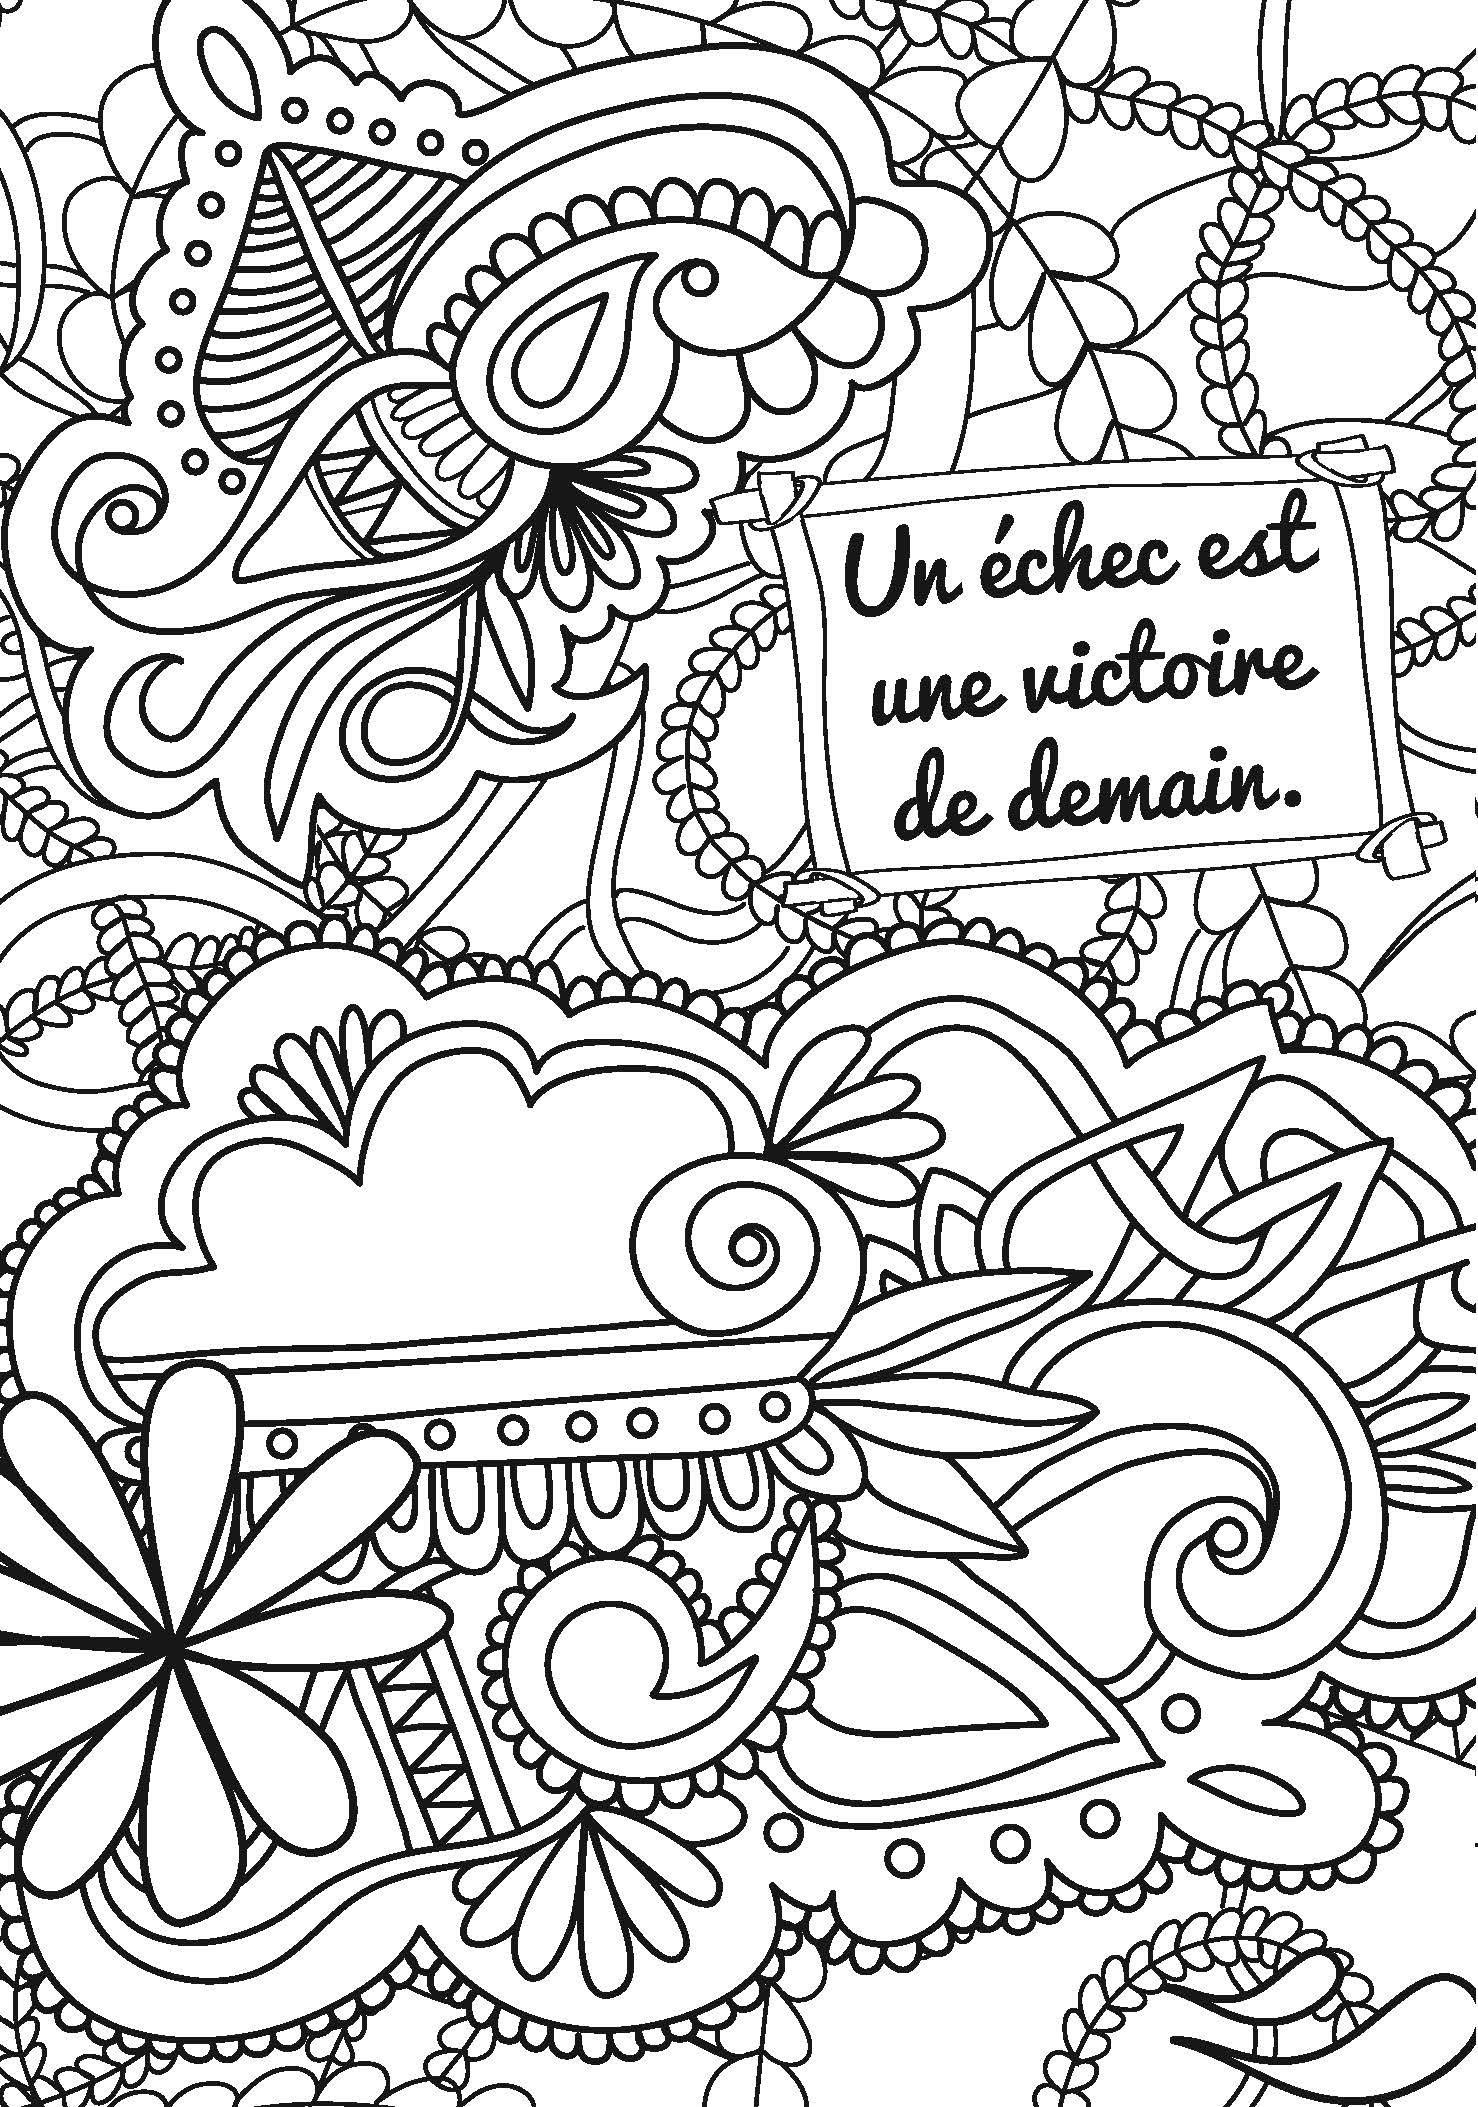 Coloriage Anti Stress Cest Quoi.Coloriage Anti Stress Message